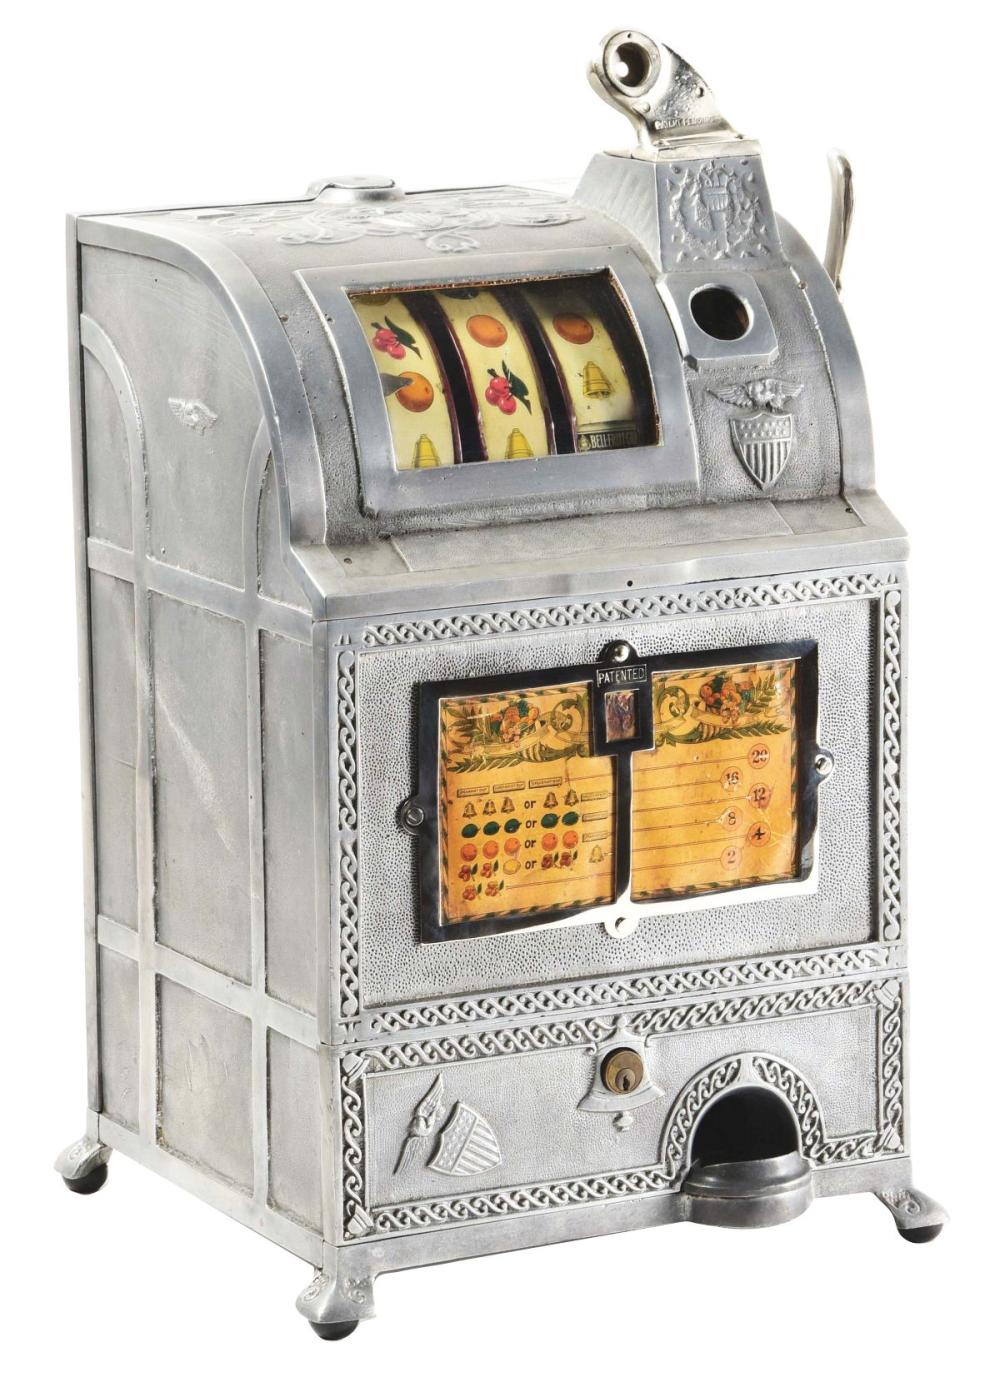 5¢ BURNHAM GUM WORKS SLOT MACHINE.